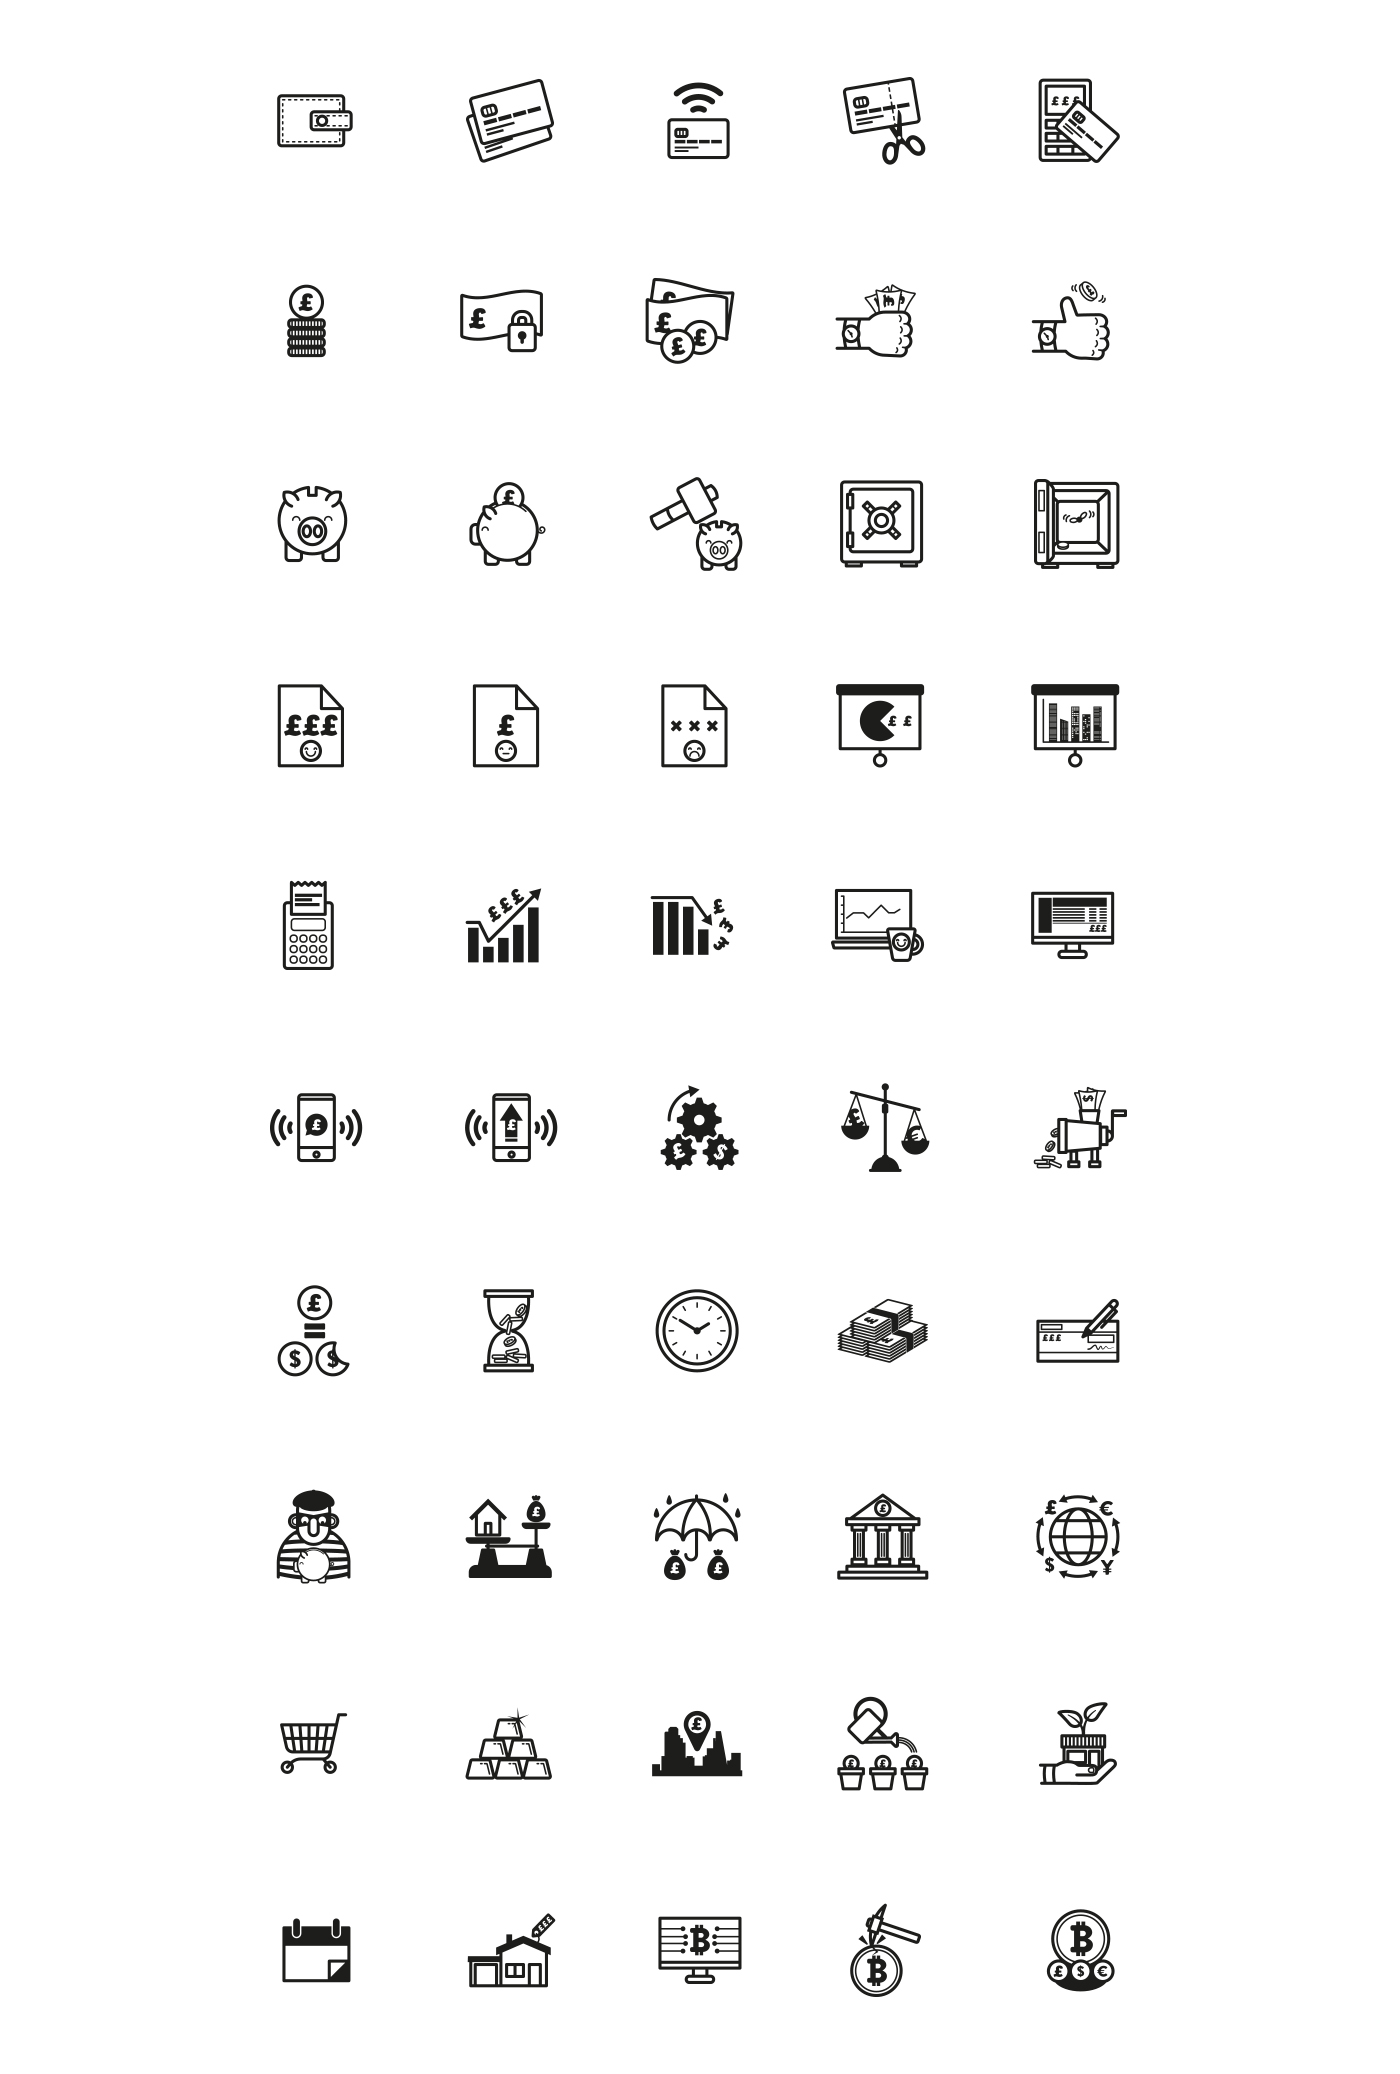 50 Free Vector Financial Icons - A set of icons based around finance and financial concepts. Multiple file formats available (.ai, .eps, .svg, .png). Free for both commercial and personal use.